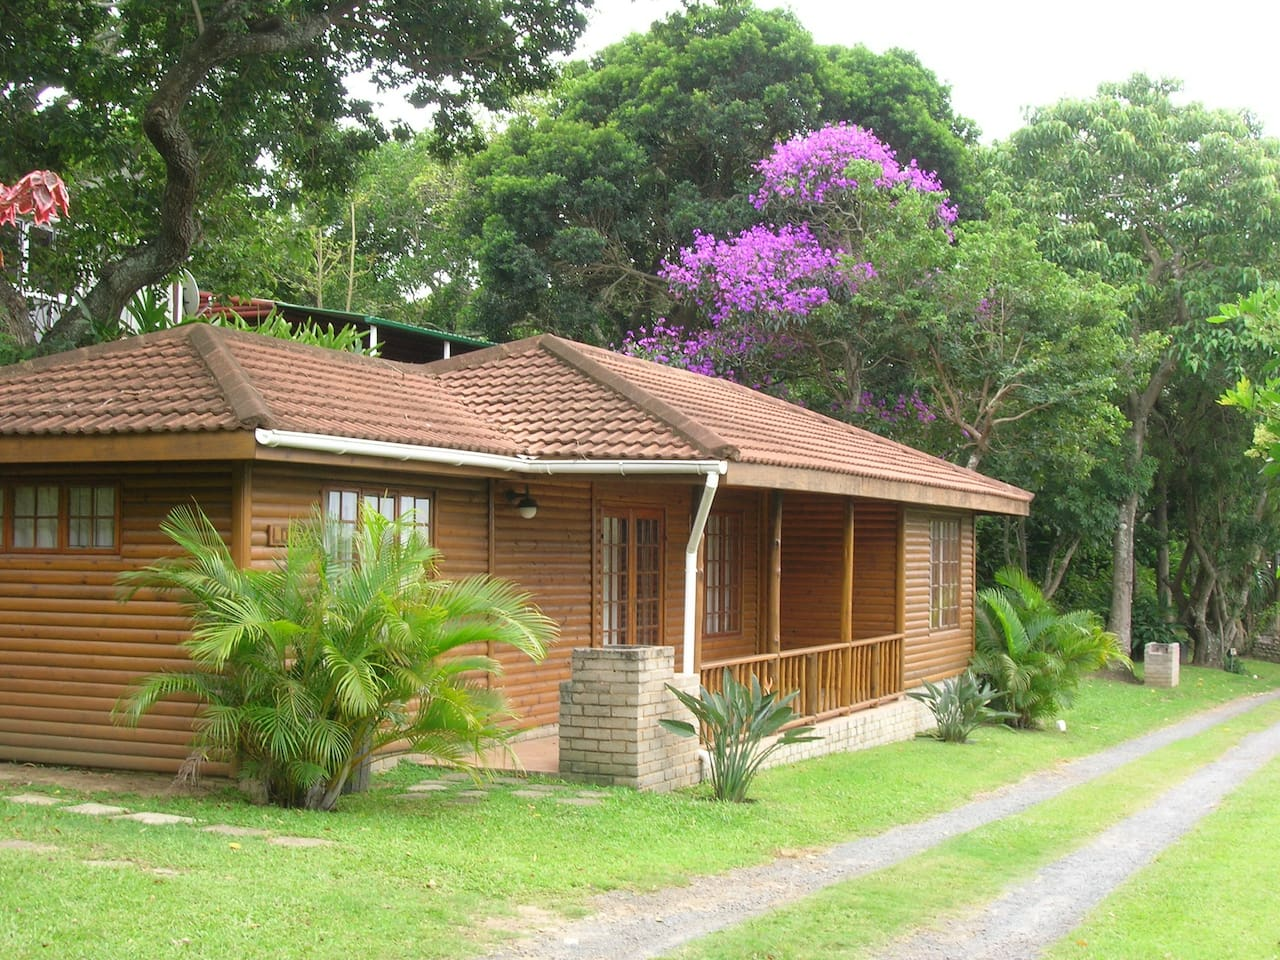 Luxury log cabins fully equipped and serviced